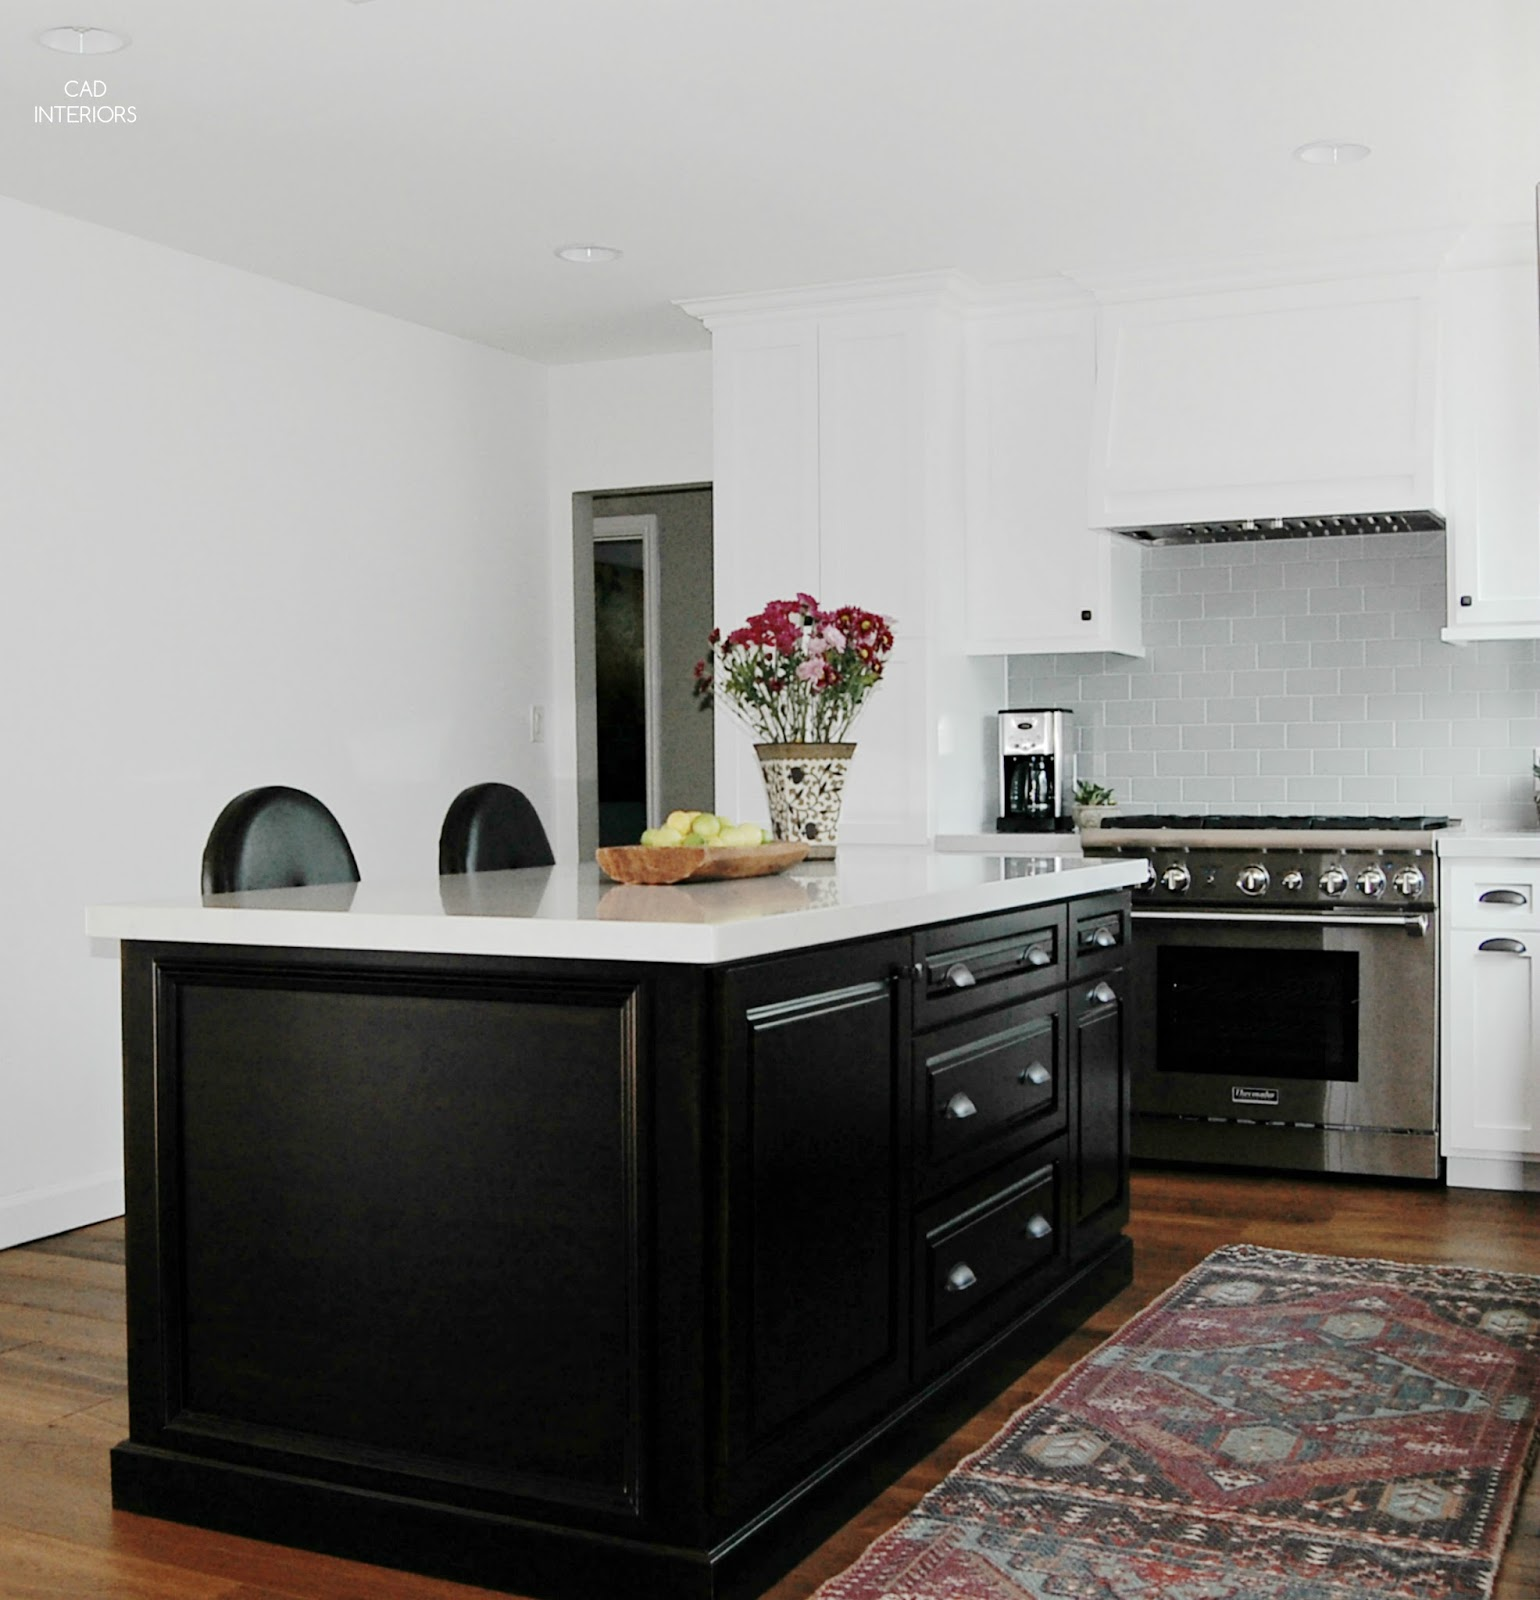 In Kitchen My Boys And Islands: CAD Interiors - Shine Your Light